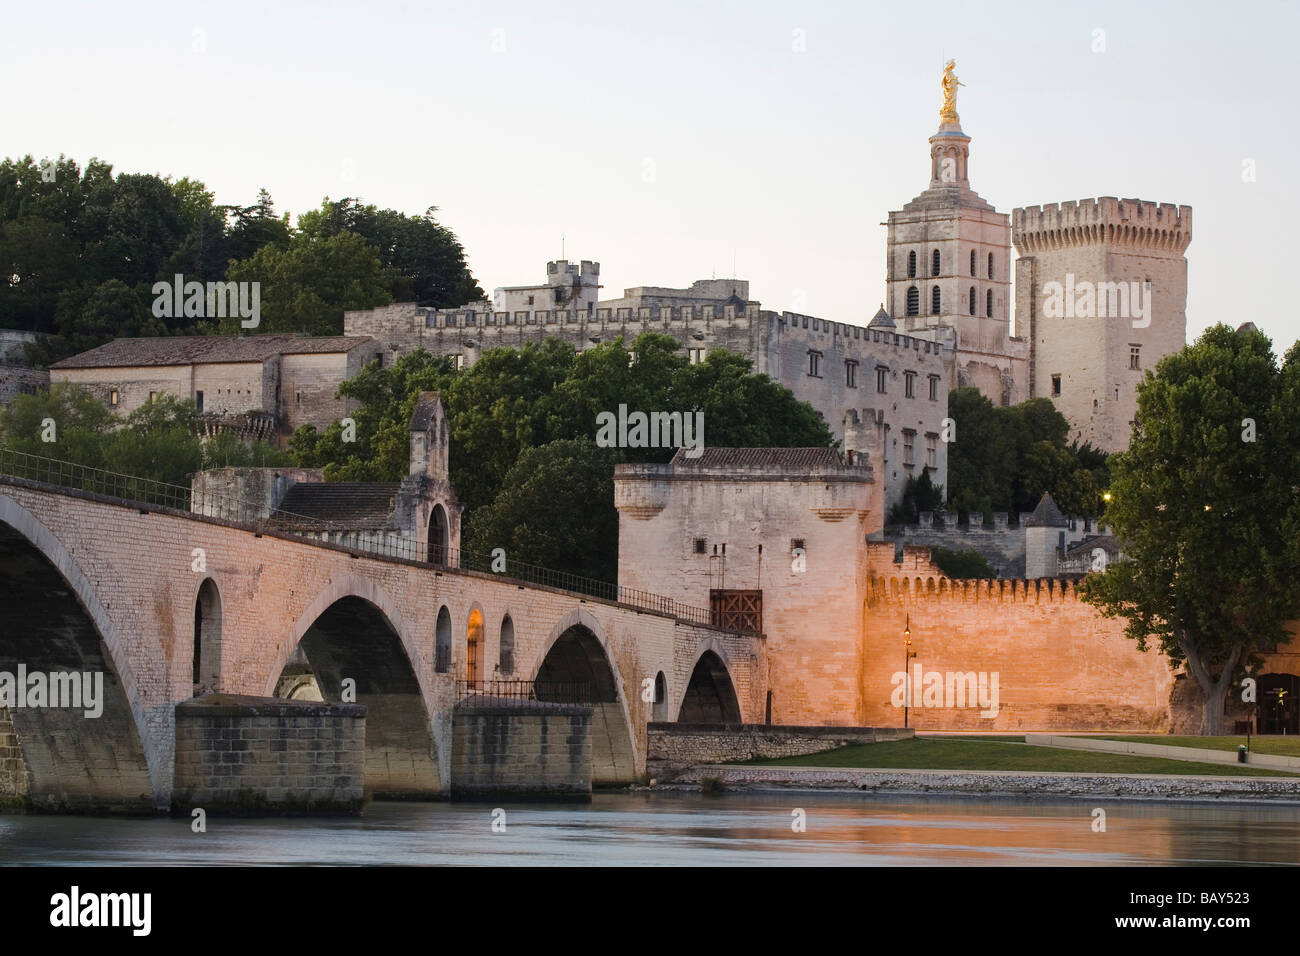 View at the bridge St. Benezet and the Palace of the Popes, Avignon, Vaucluse, Provence, France - Stock Image